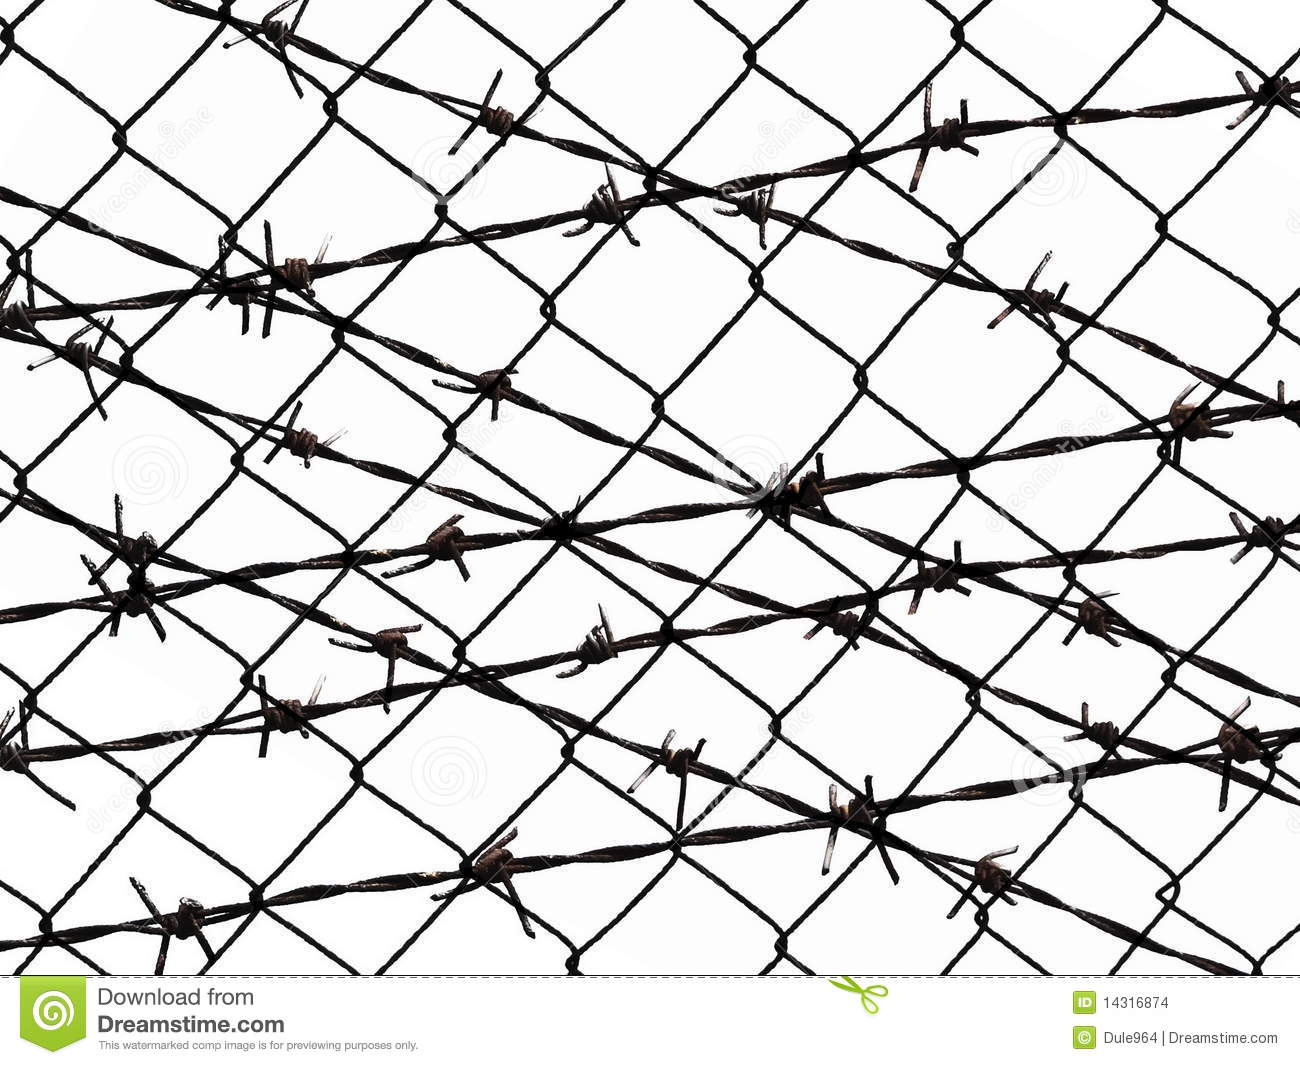 Barbed Wire Drawing at GetDrawings.com | Free for personal use ...